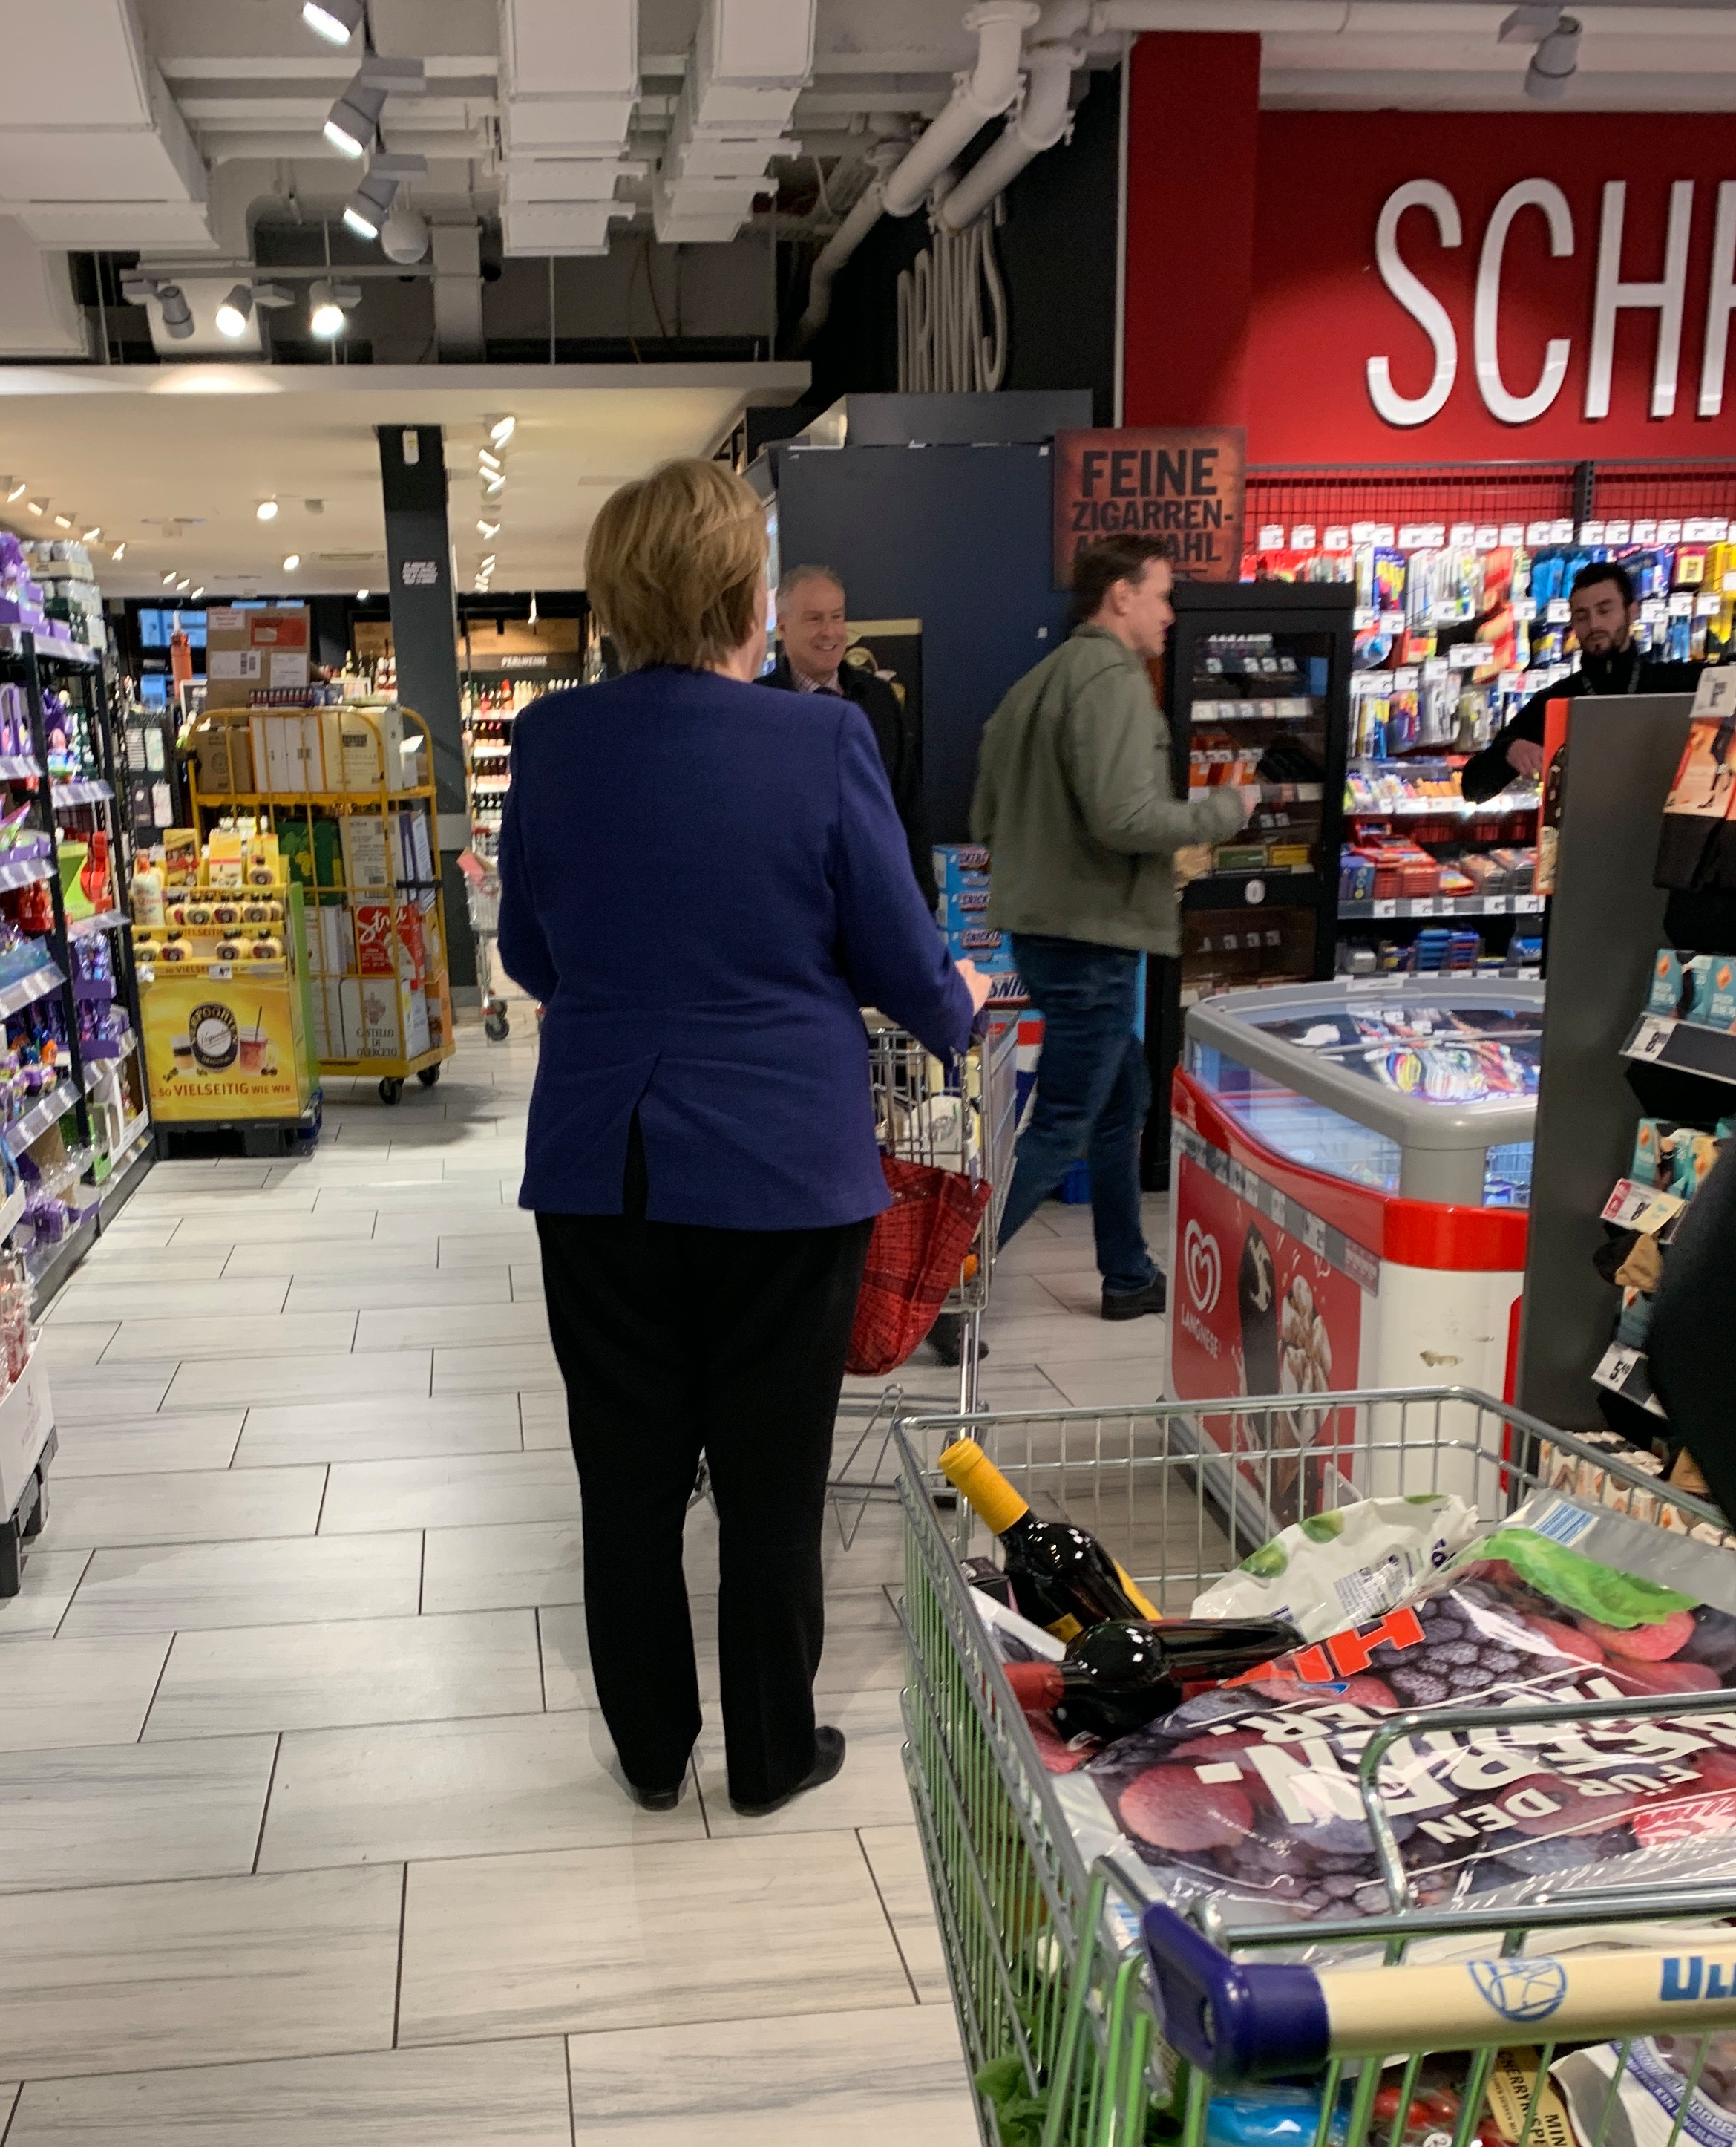 Ms Merkel spent about half an hour getting good before checking out from the supermarket in Berlin